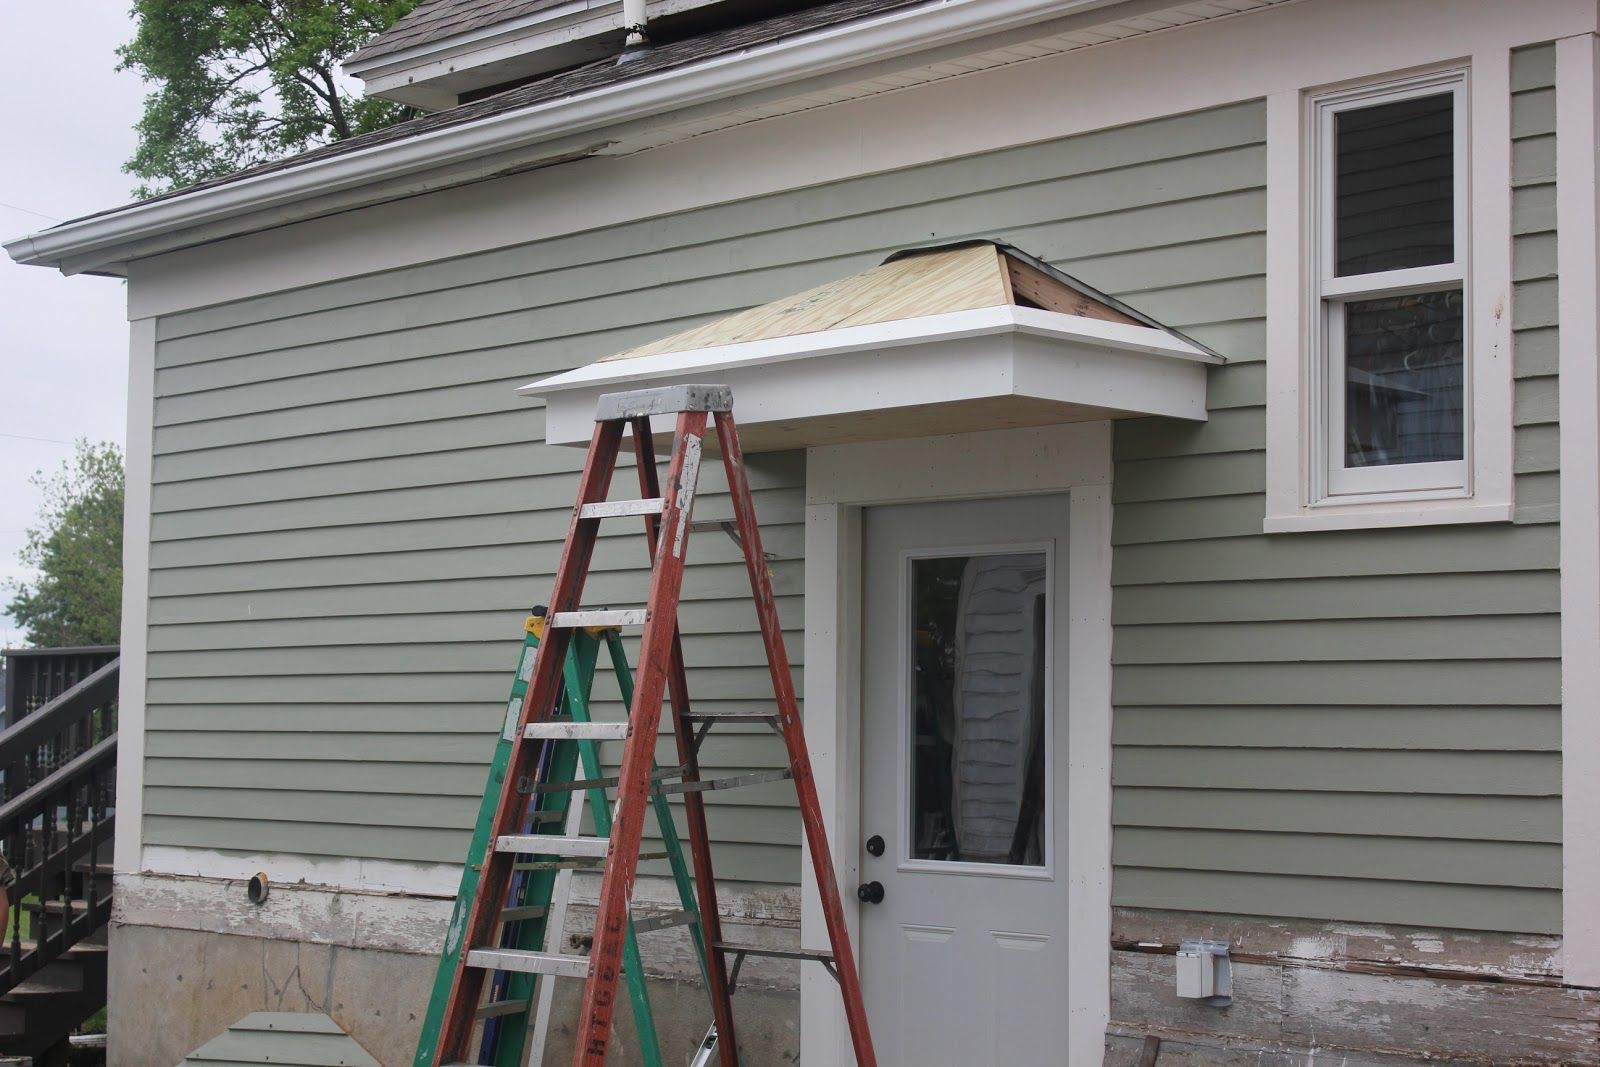 Got The Frame Up And Bolted To The House Thanks Again Mark Marlene For Taking Time Out Of Your Weekend To Help U Door Overhang Door Awnings Awning Over Door